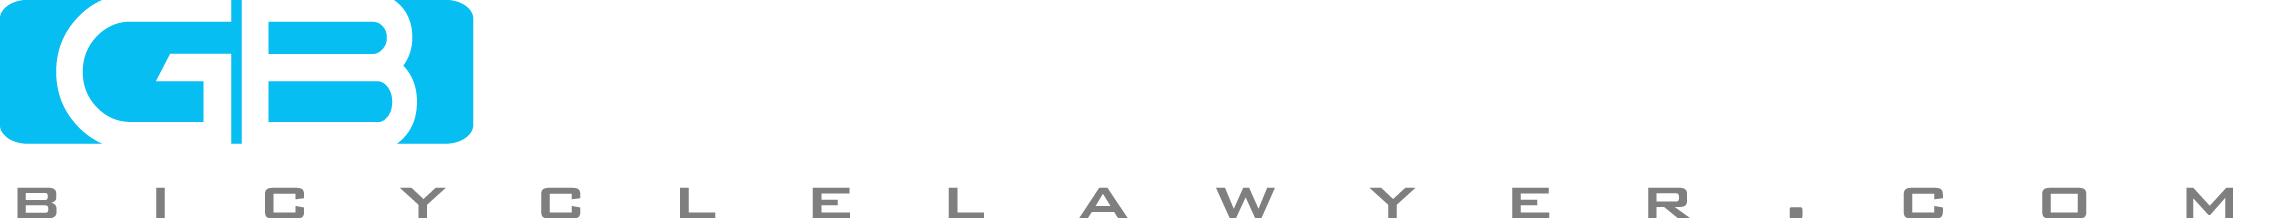 logo_horizontal_color_white.png